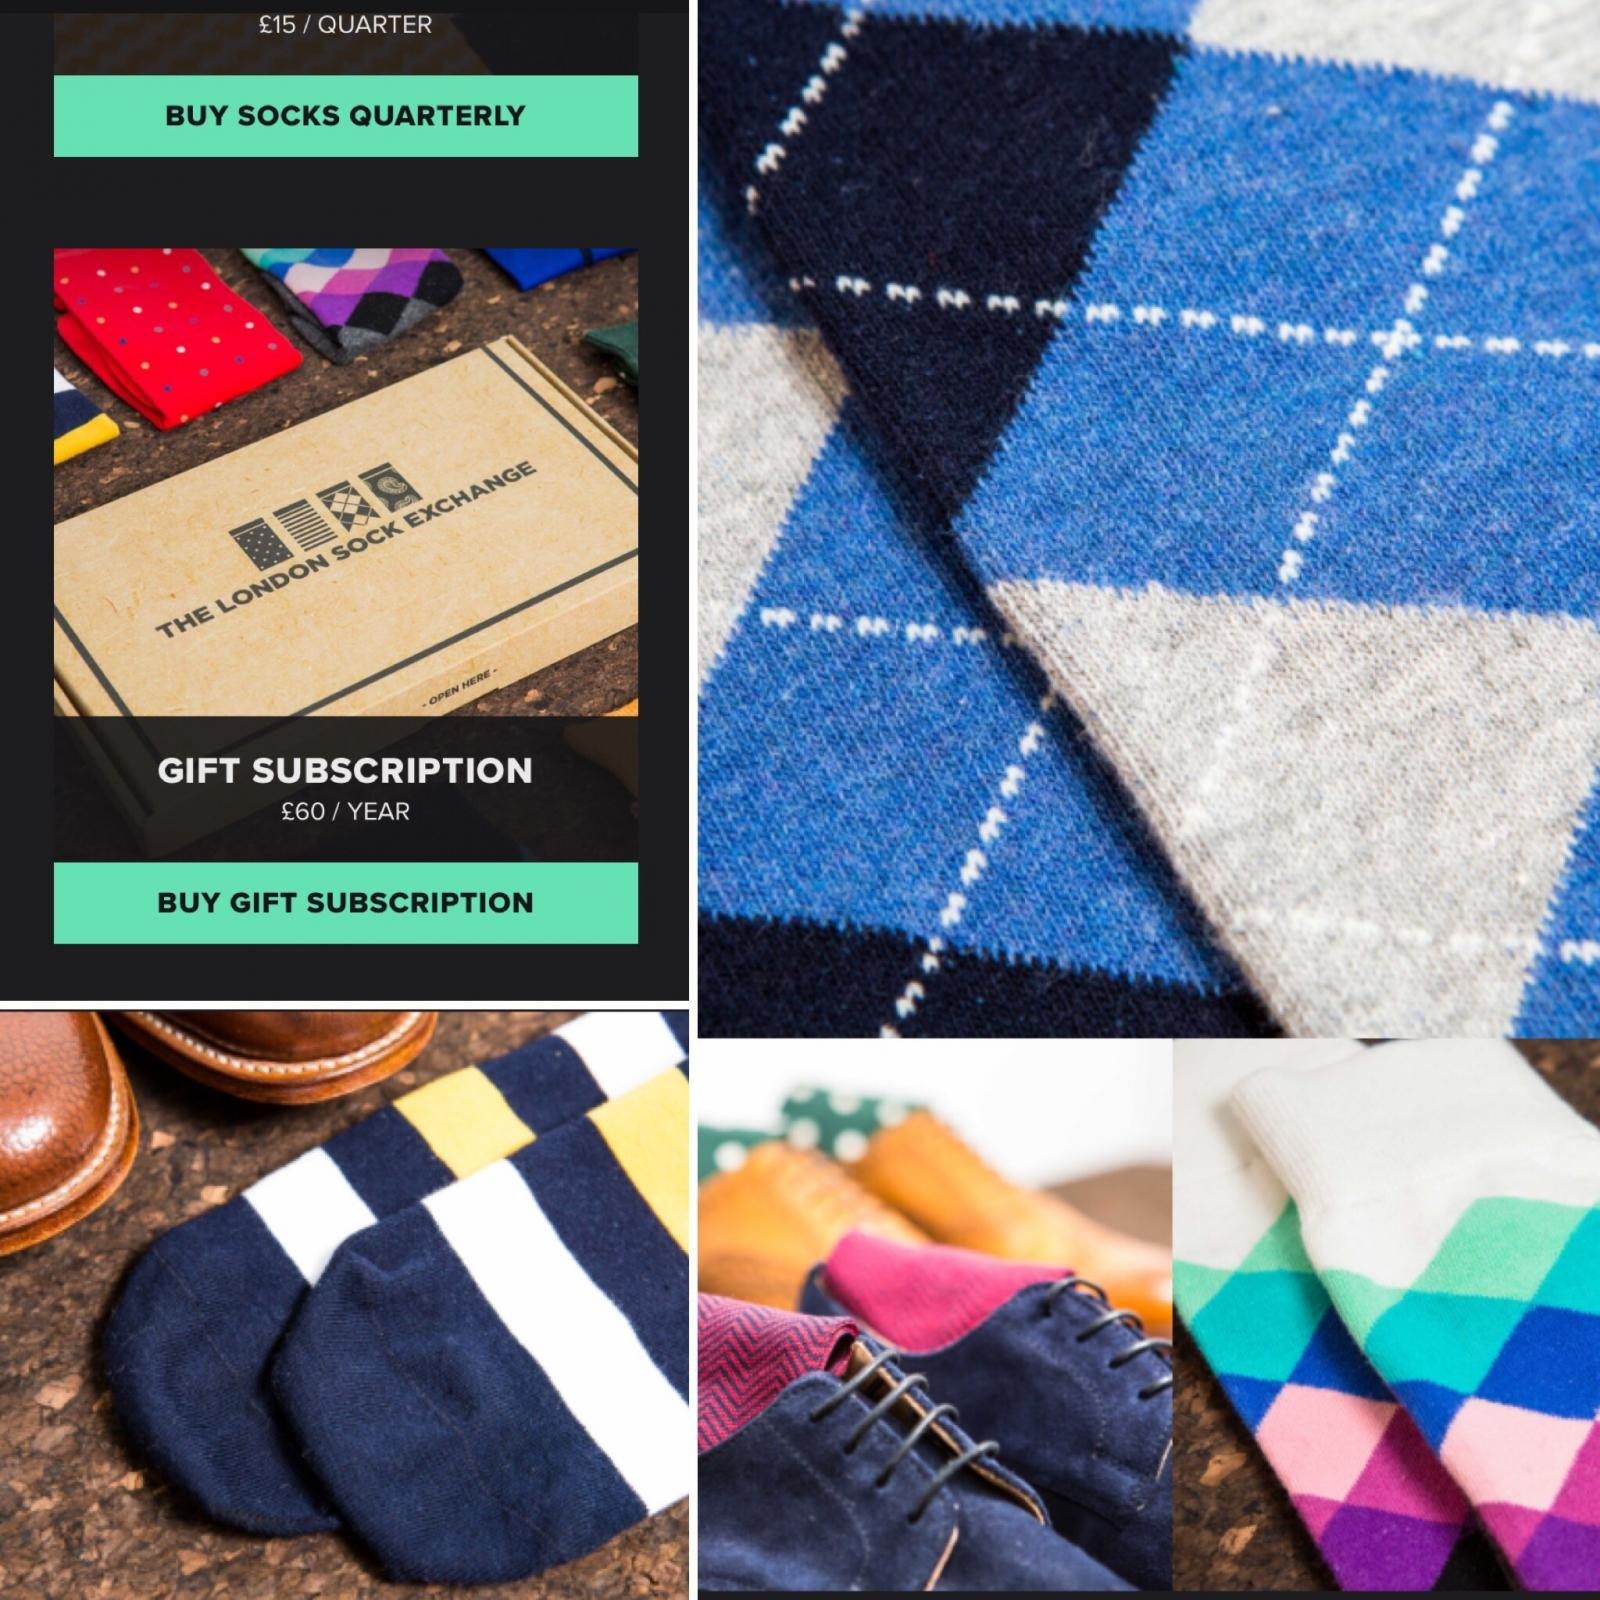 The London Sock Exchange - YOU THE DADDY Giveaway